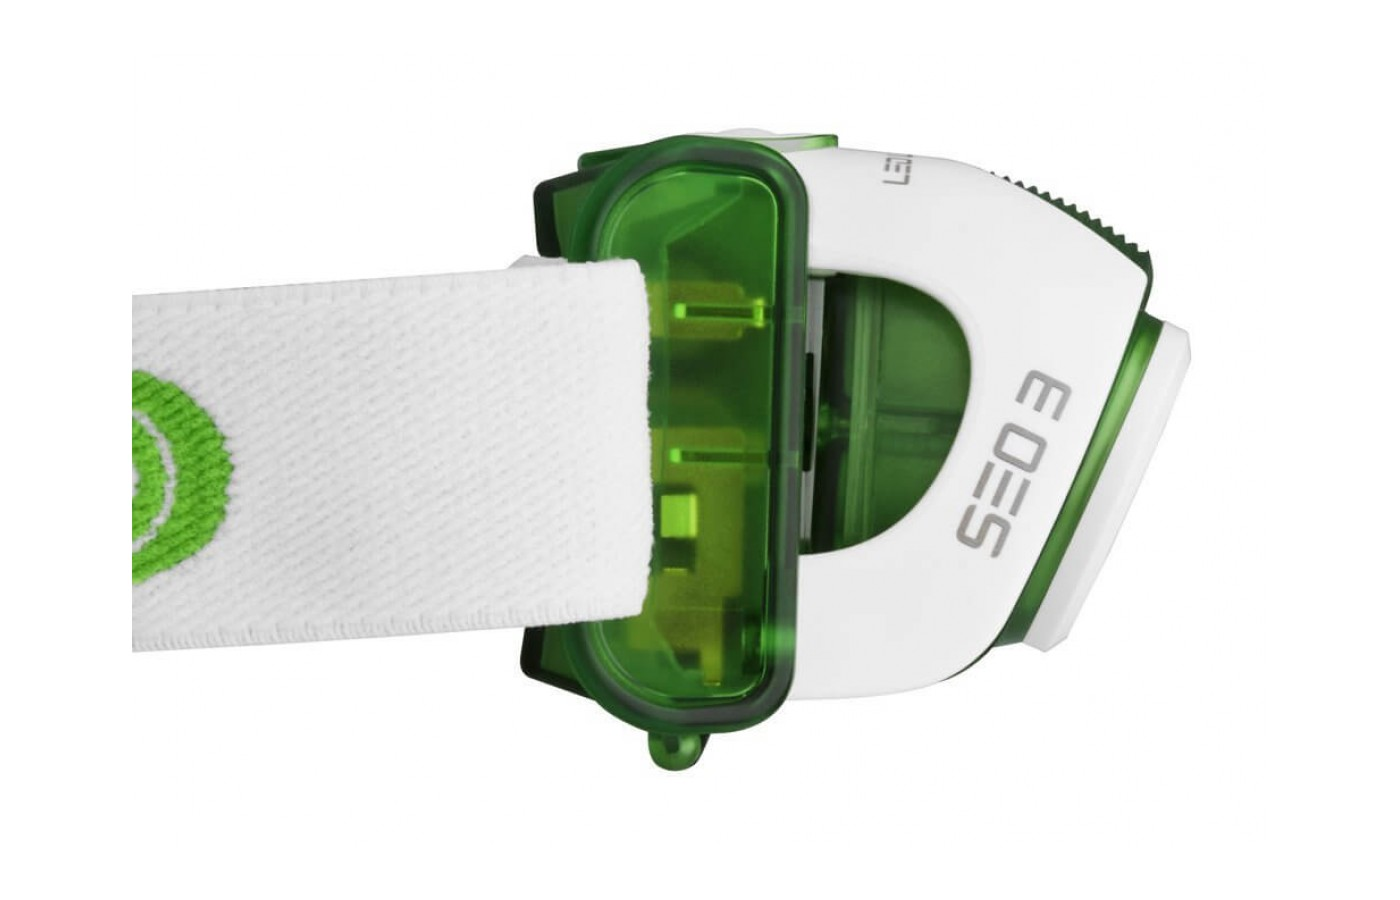 Medial View of LED Lenser SEO 3